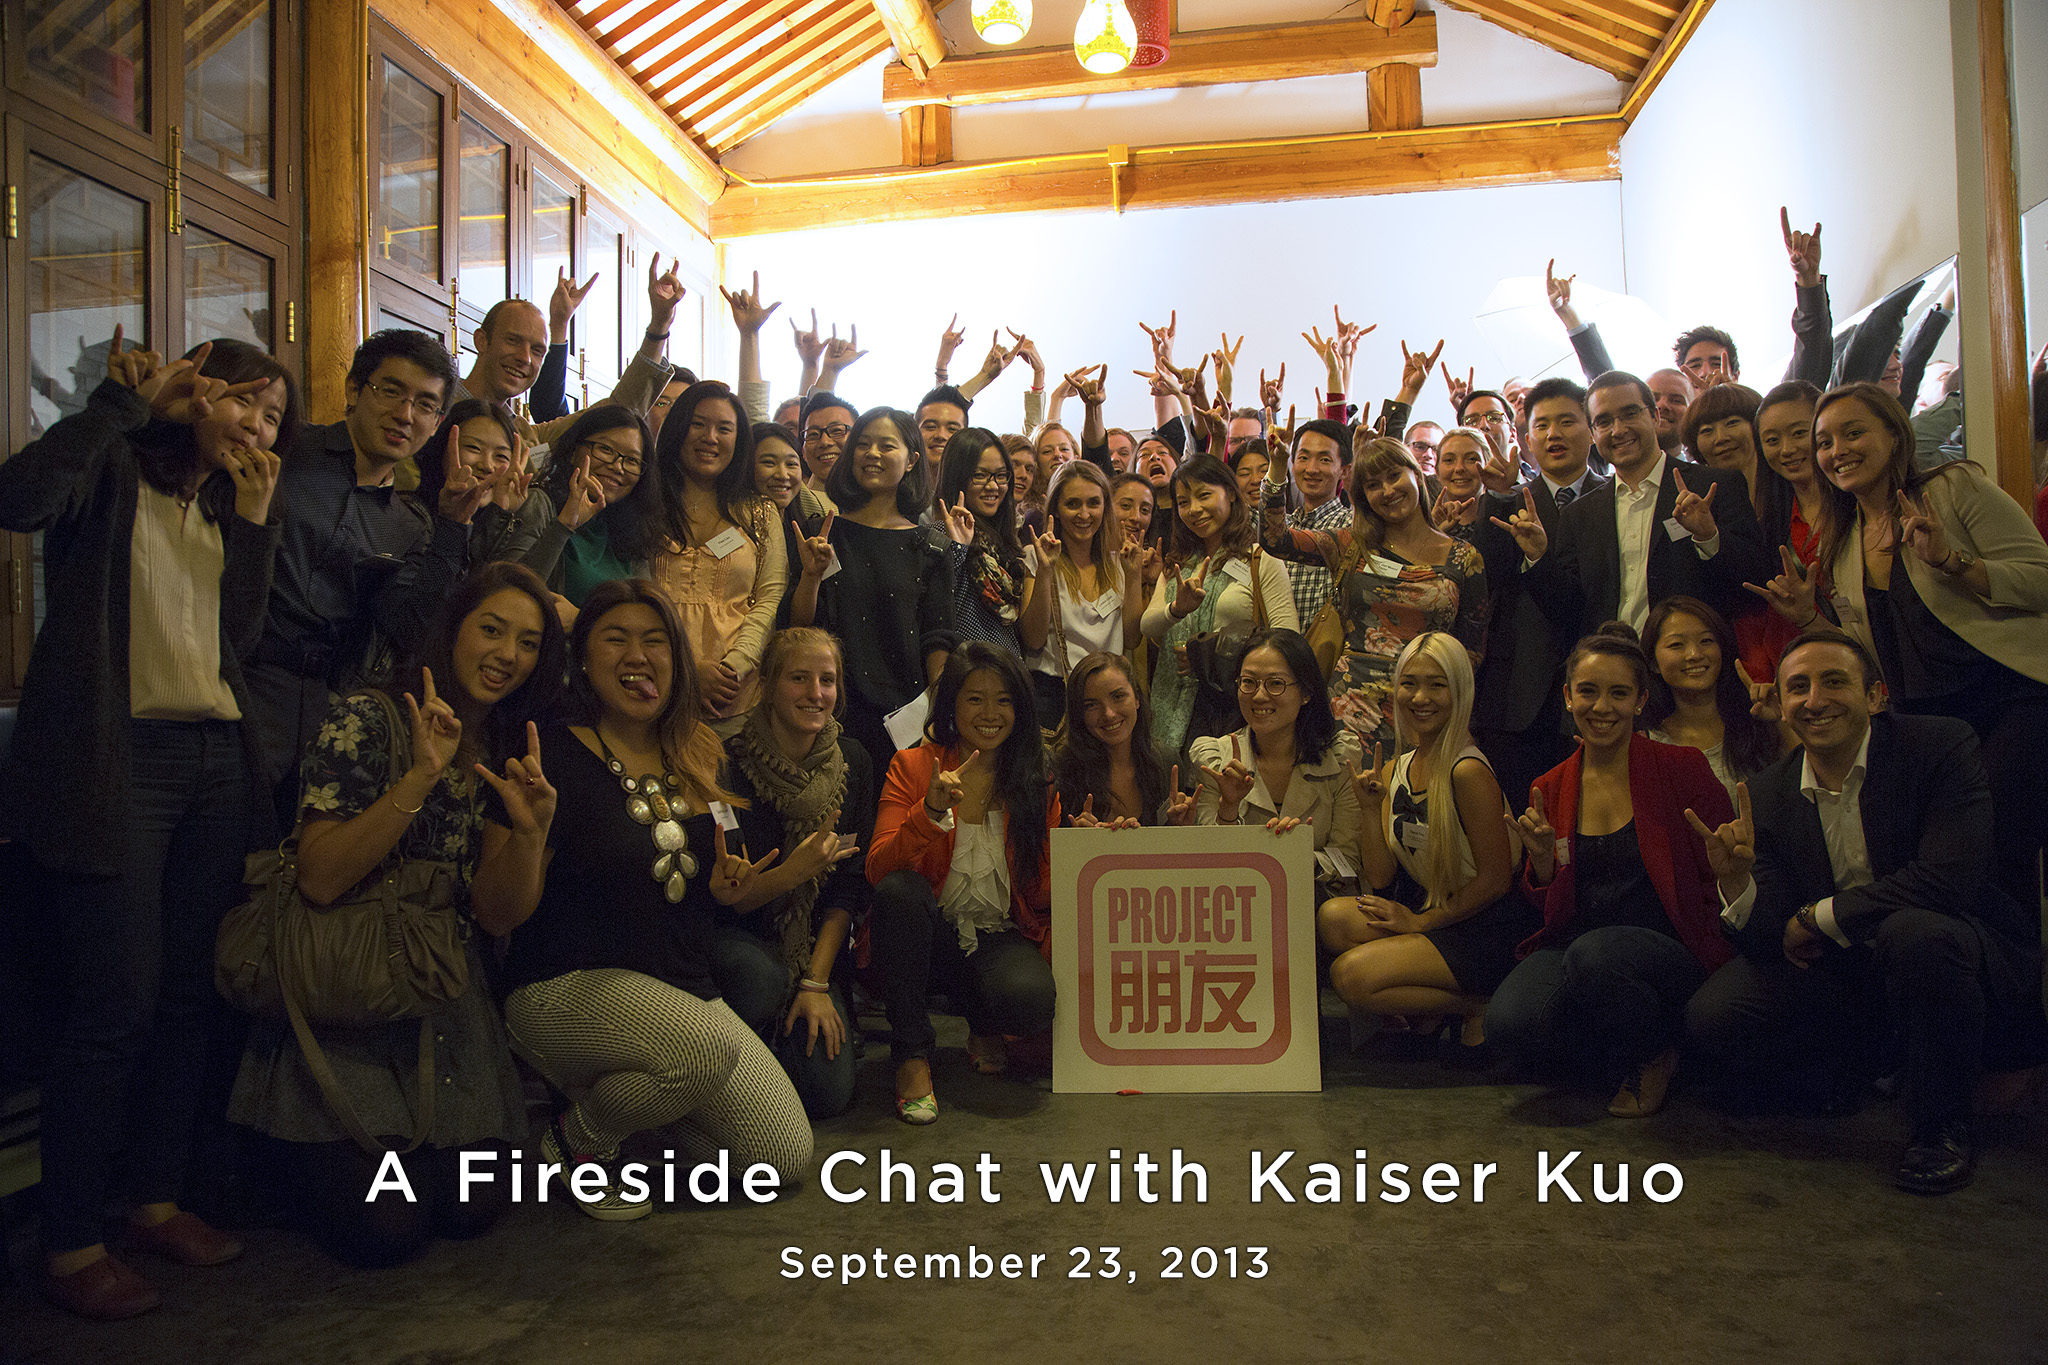 A Fireside Chat with Kaiser Kuo